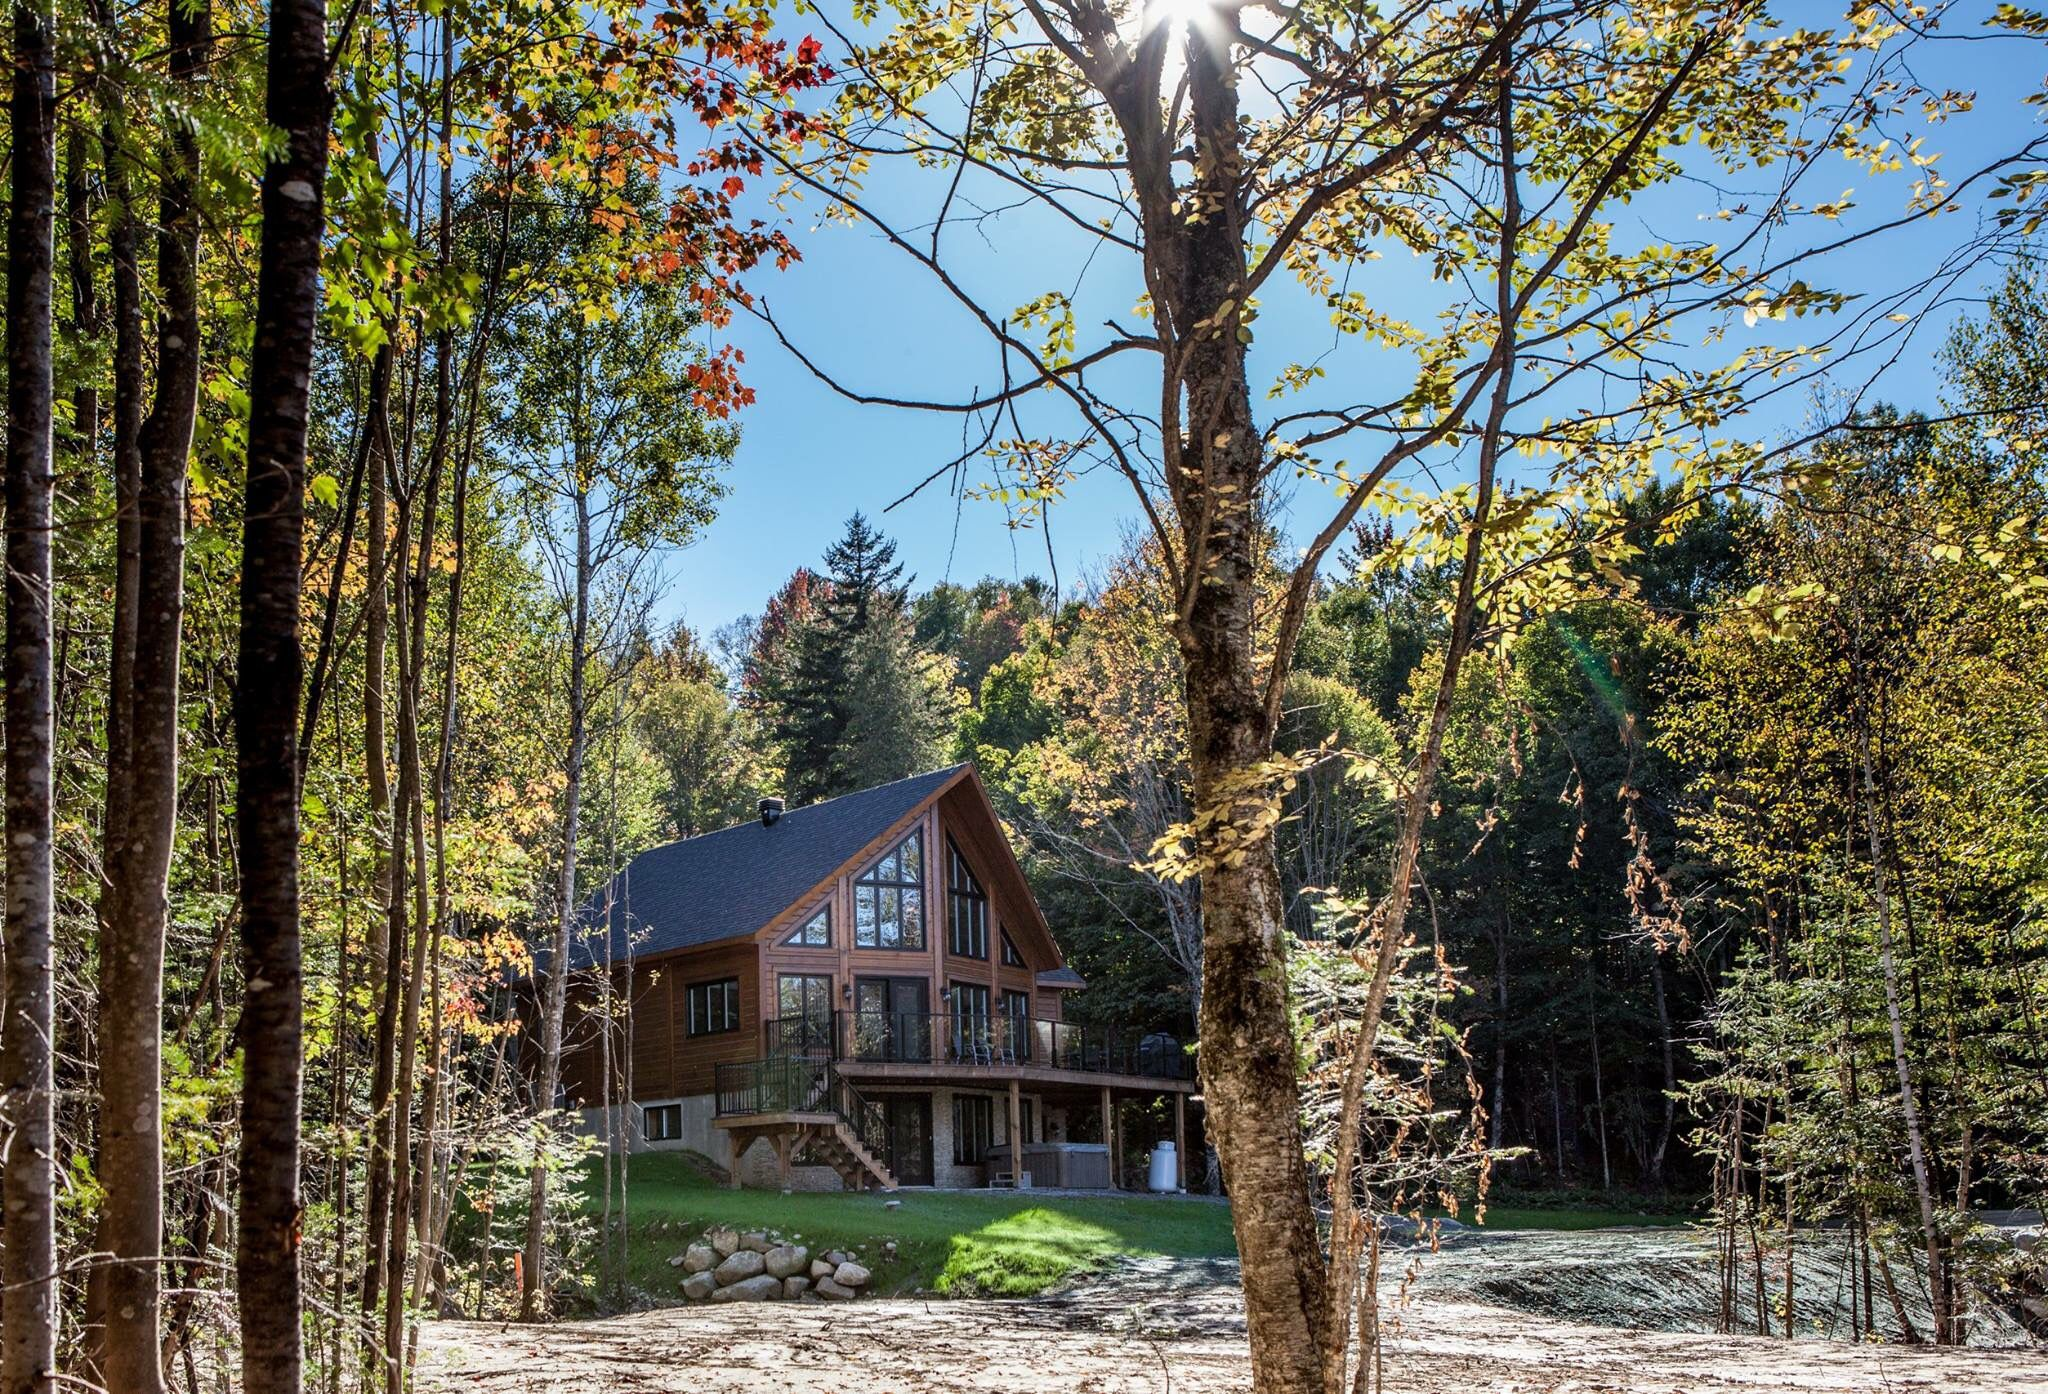 Choose your 3 or 4 bedroom cottage at Club Lac Walfred to enjoy the ultimate vacation! Our exclusive, private resort is located just 45 minutes north of Montreal in the Laurentians. Visit us at www.clublacwalfred.com.